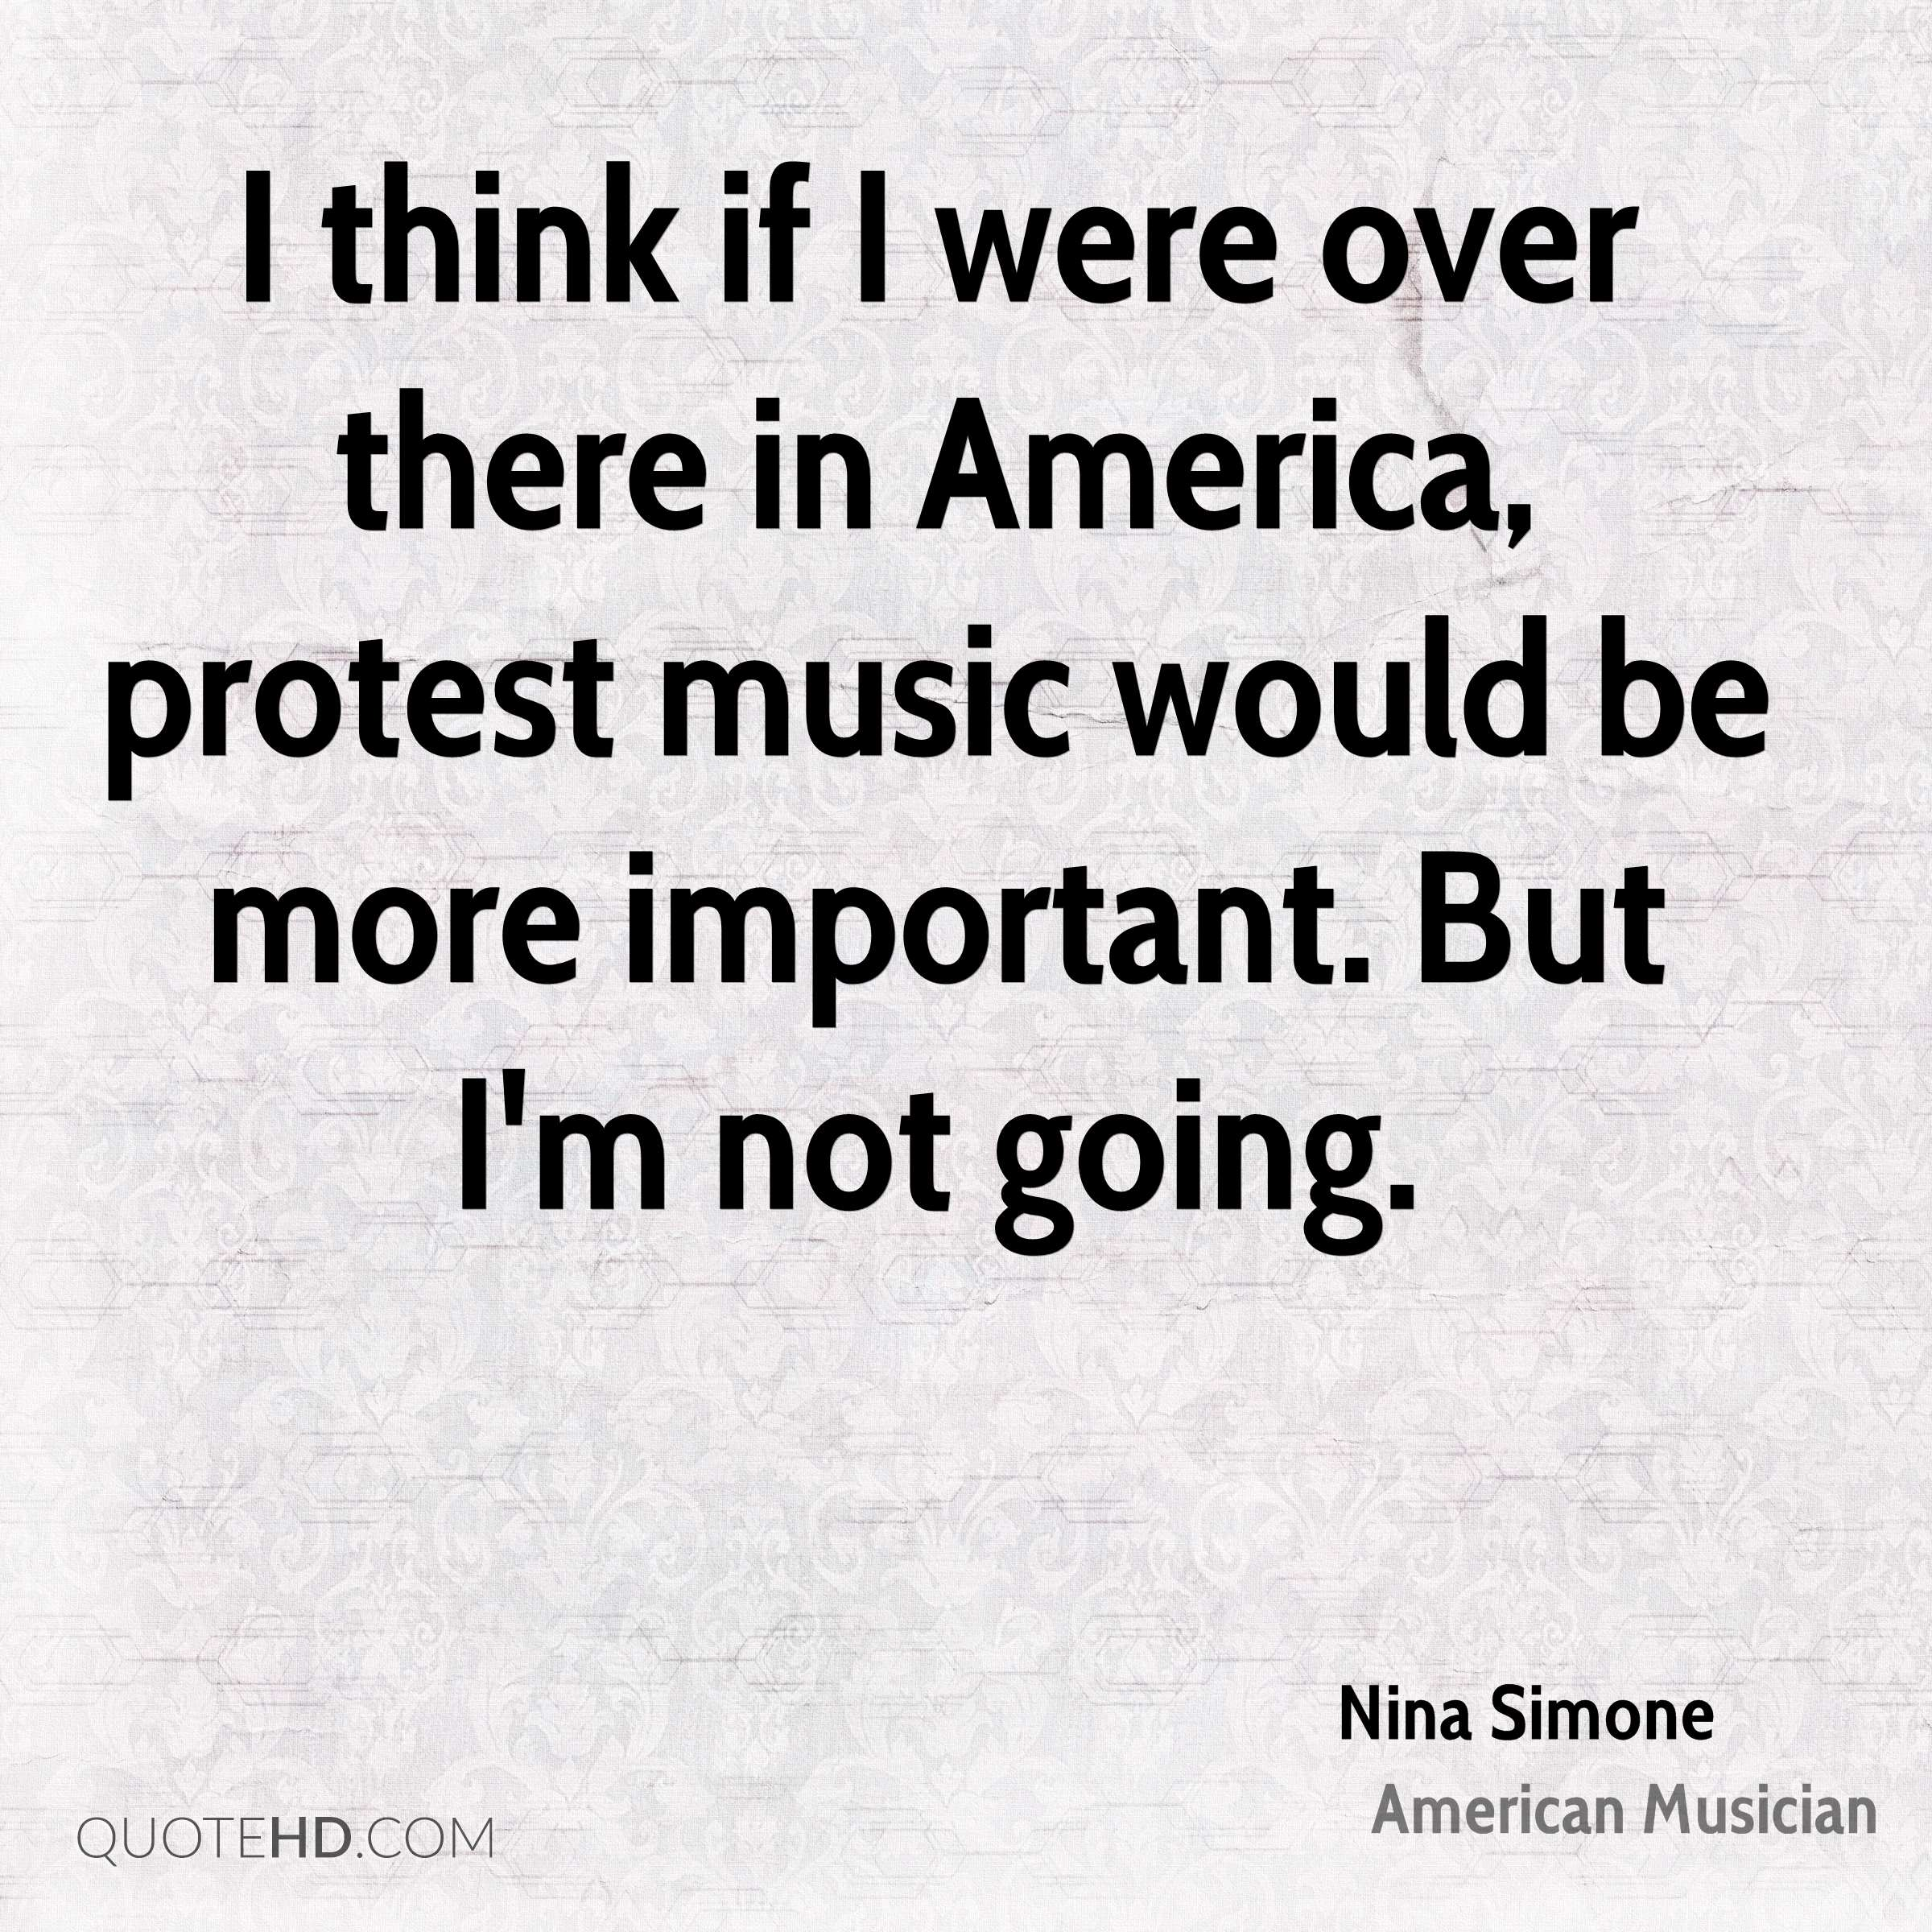 Nina Simone Quotes  Quotehd. Coffee Programming Quotes. Love You Quotes Pinterest. Sad Quotes Wallpapers Tumblr. Quotes About Moving On From Cheating. Deep Quotes Images. Heartbreak Boyfriend Quotes. Bible Quotes Excellence. Summer Quotes Happy